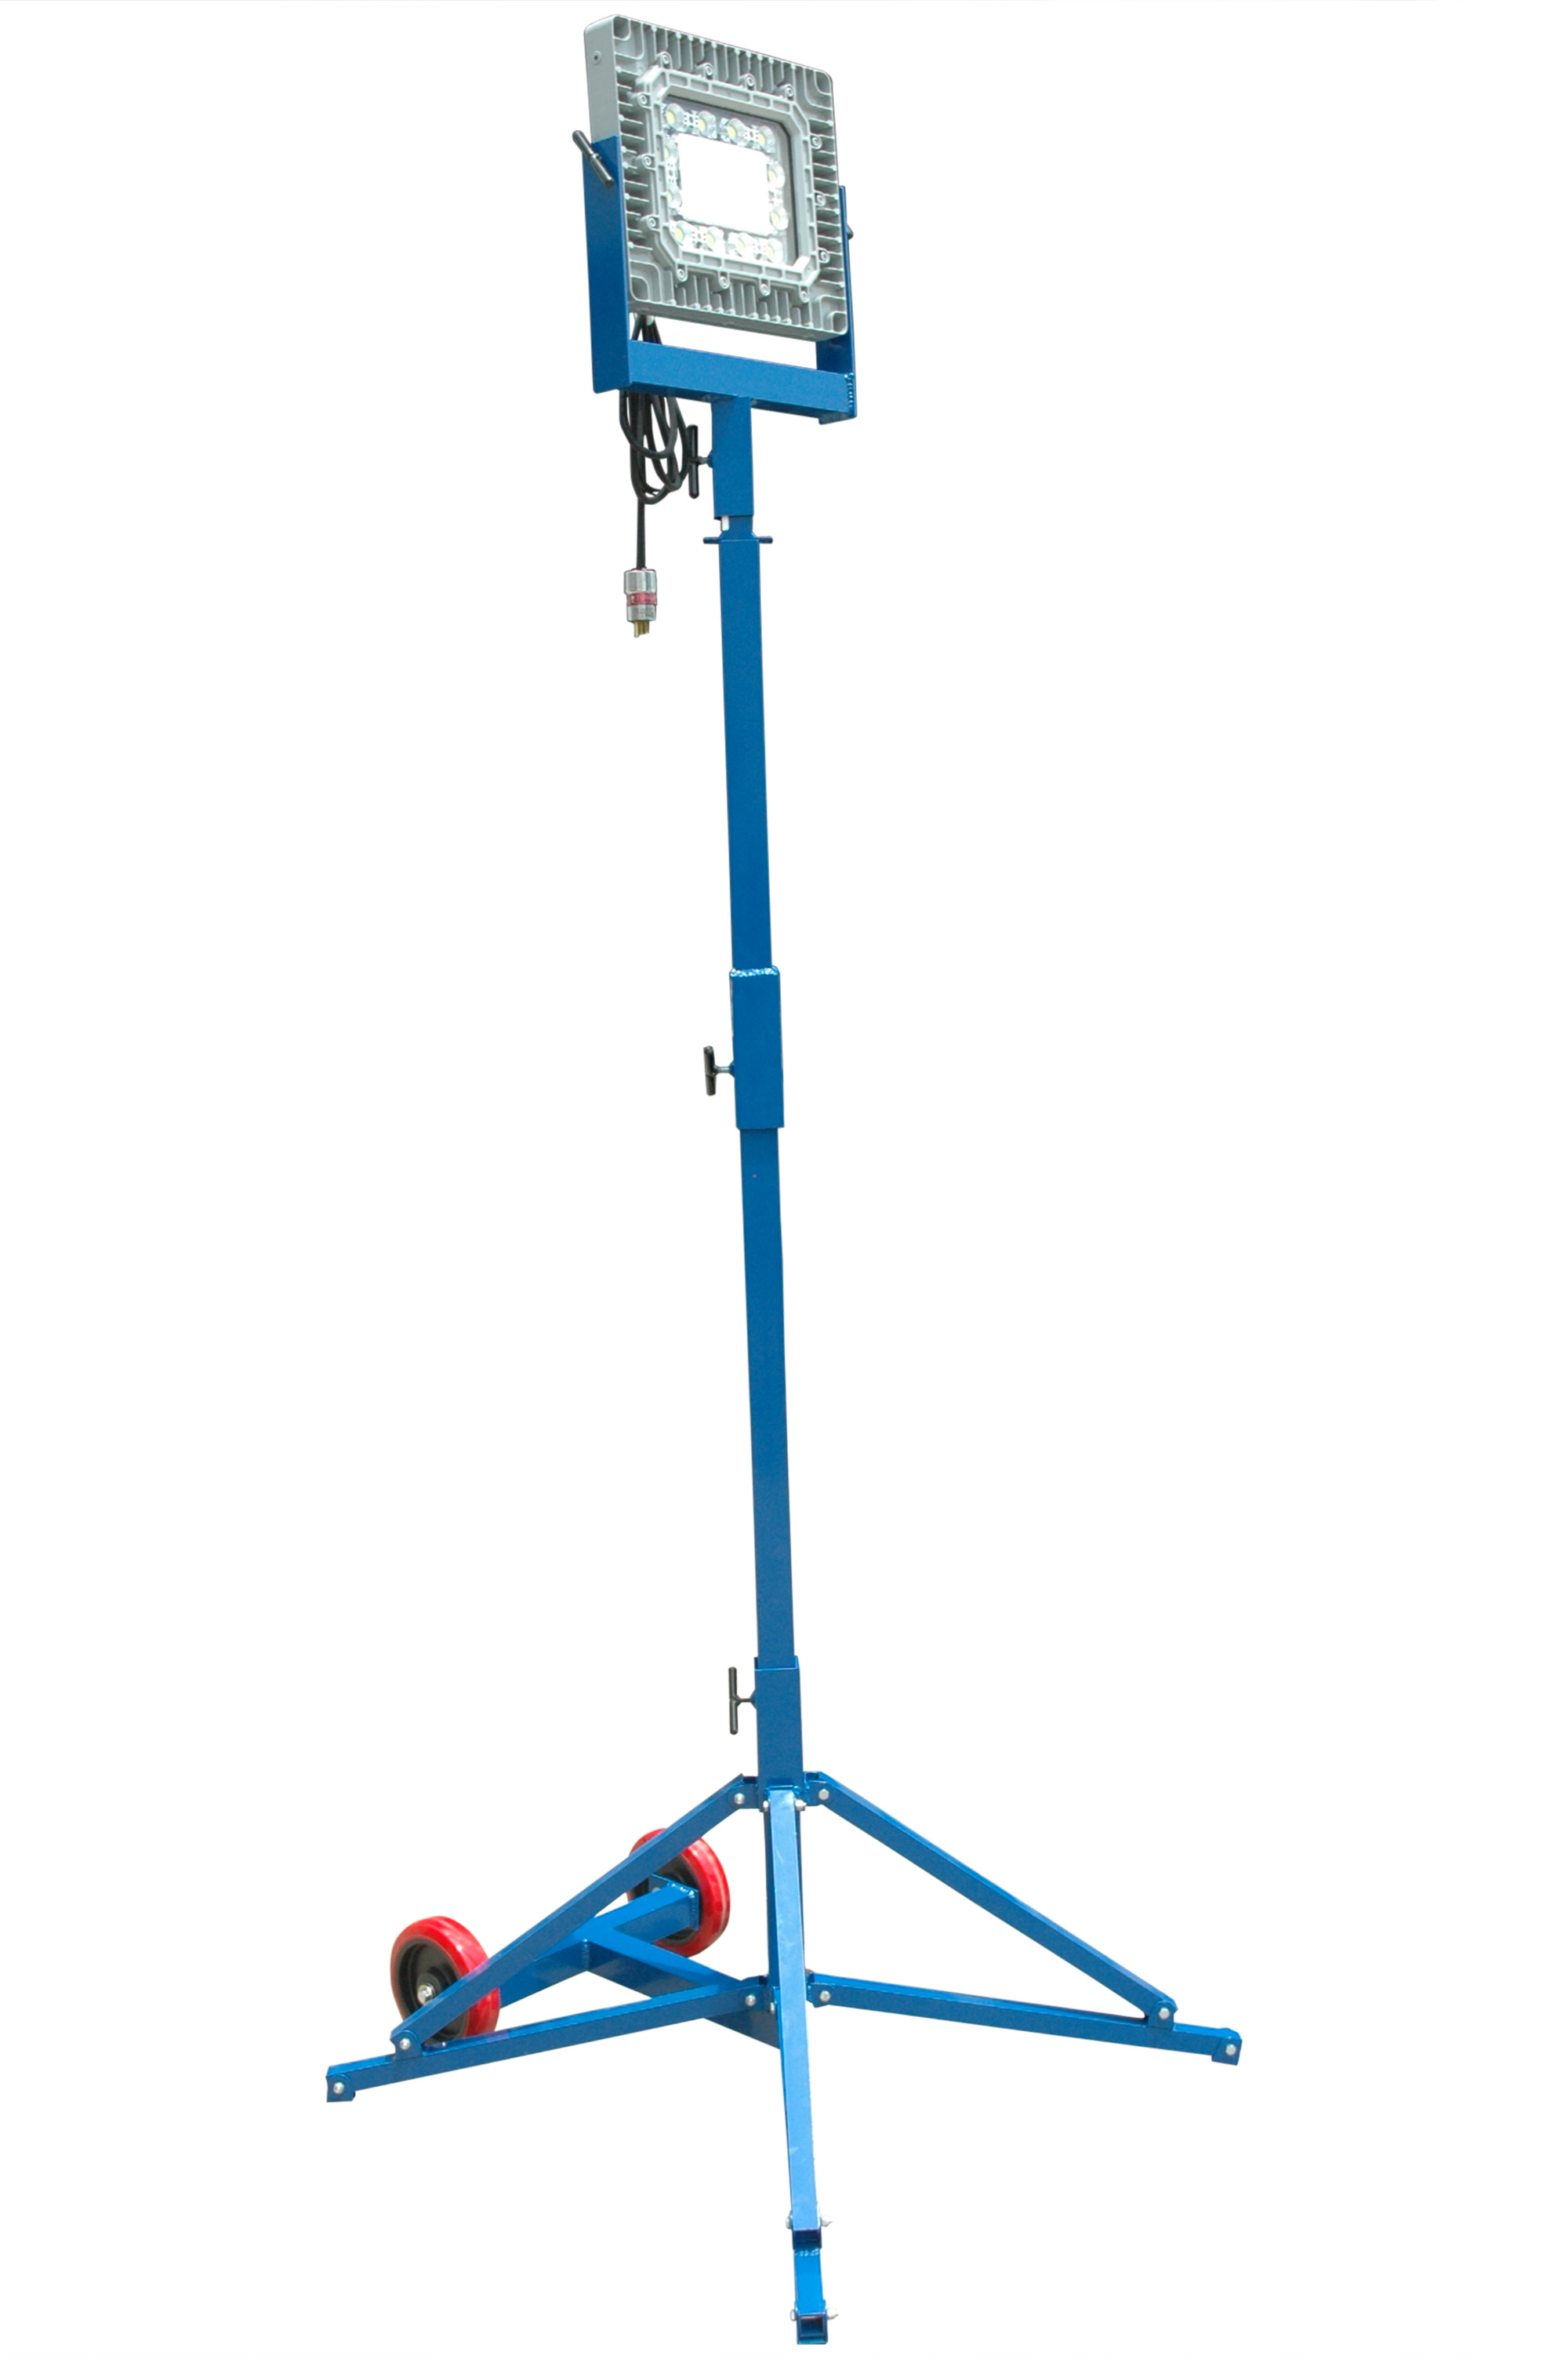 New Portable Led Light Tower From Provides Explosion Proof